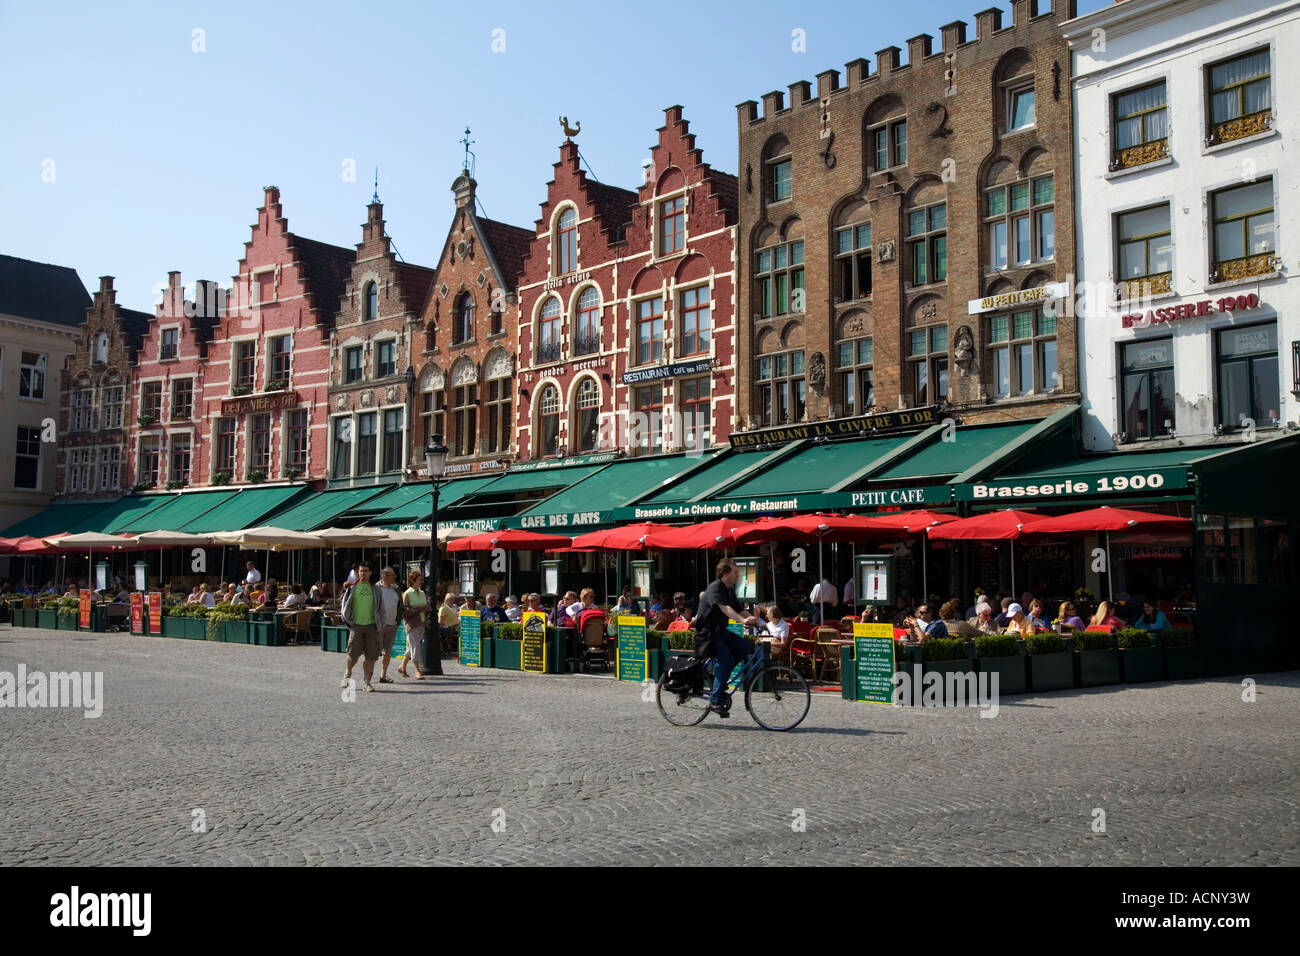 Resturant Stores Historical Marketplace With Outdoor Restaurant And Stores In The